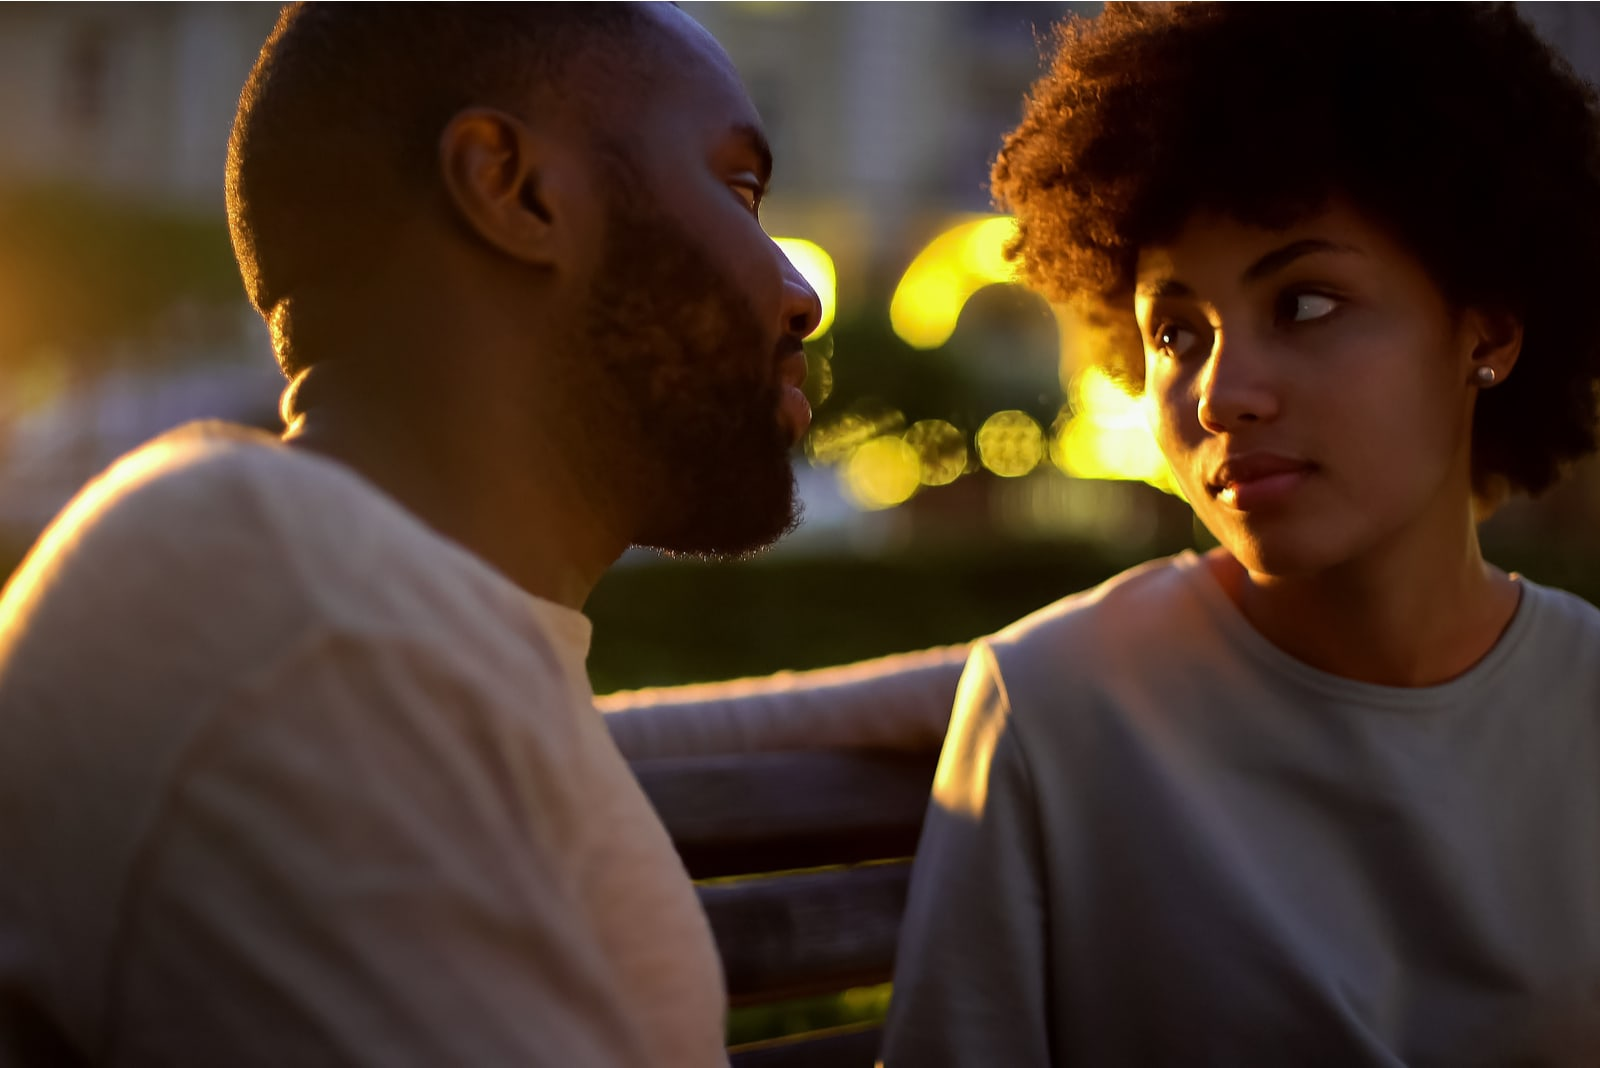 Woman looking at boyfriend with hope